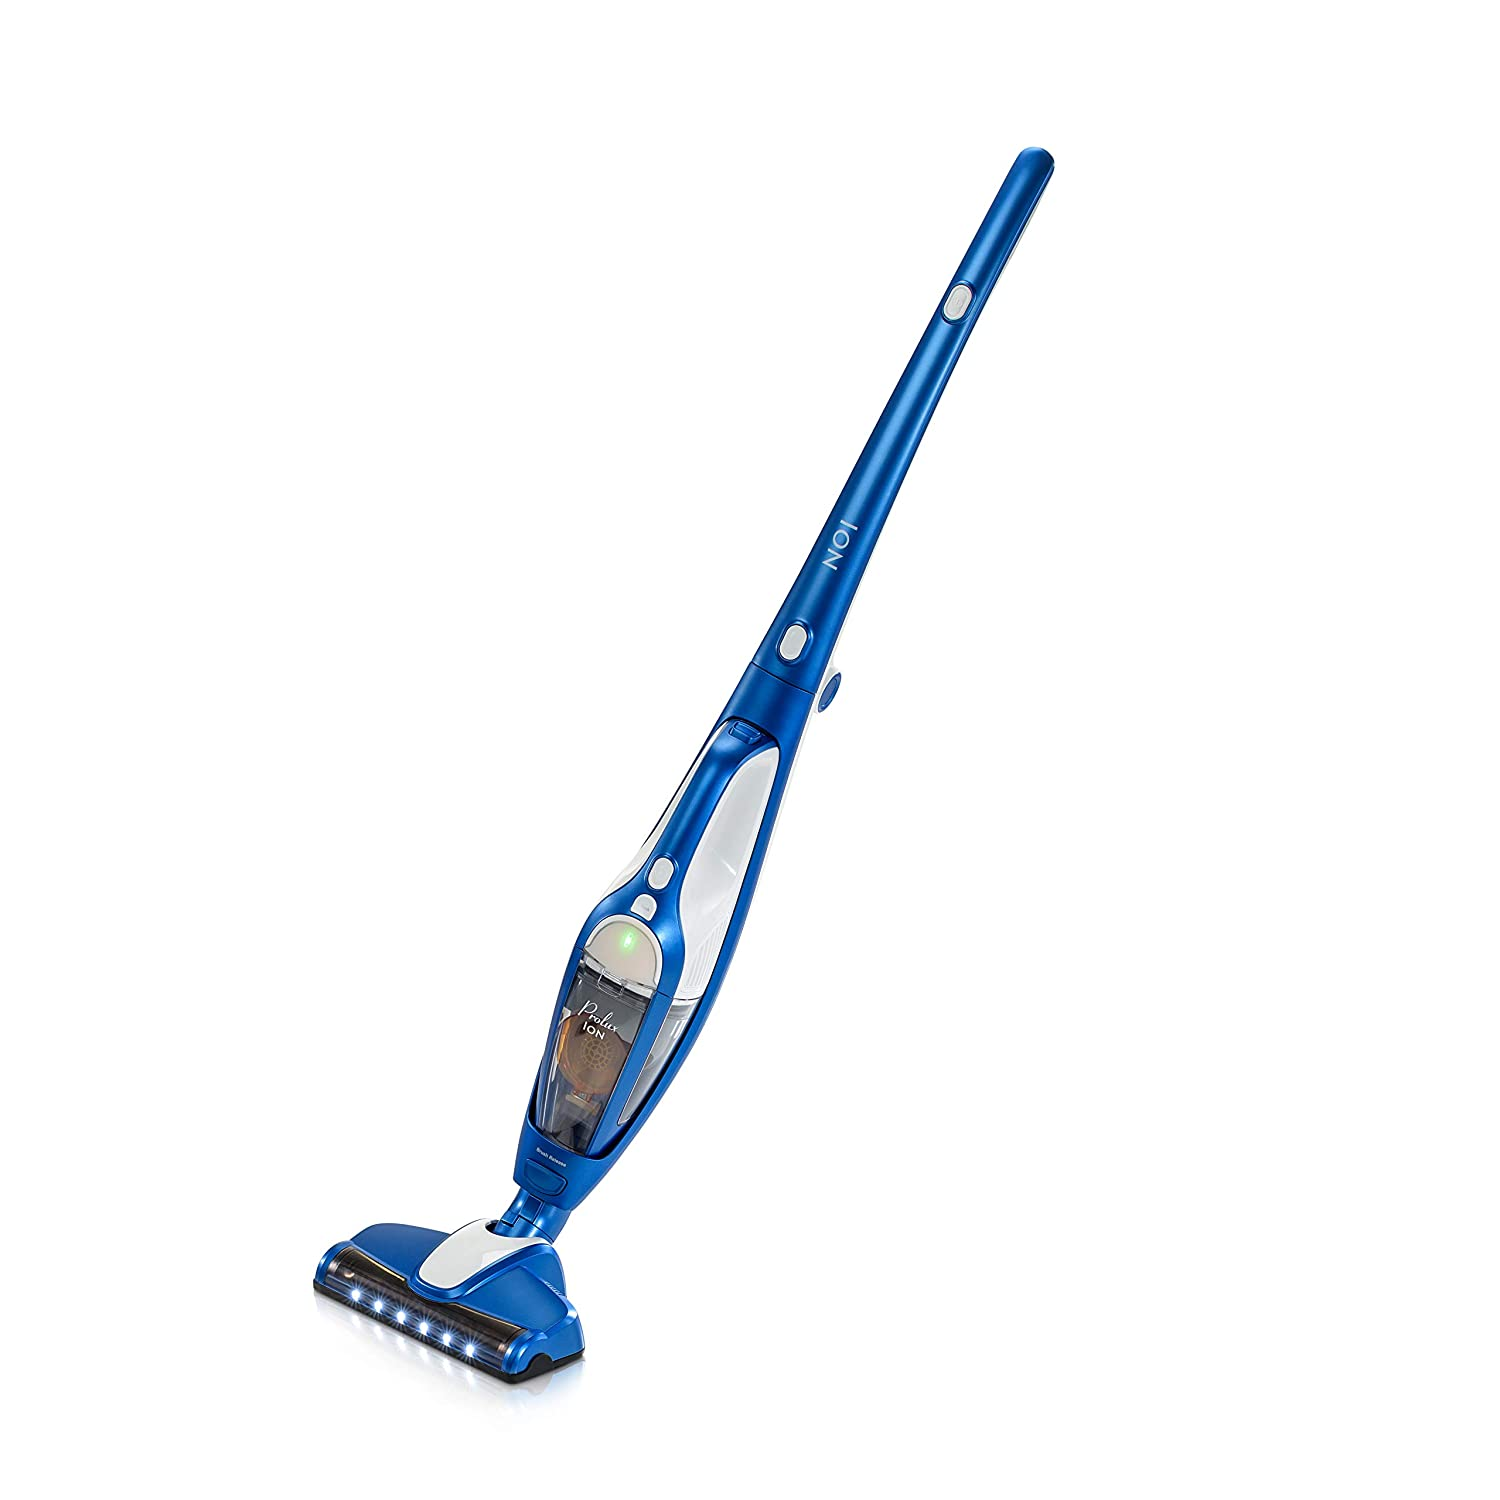 Prolux Ion Battery Powered Bagless Cordless Stick